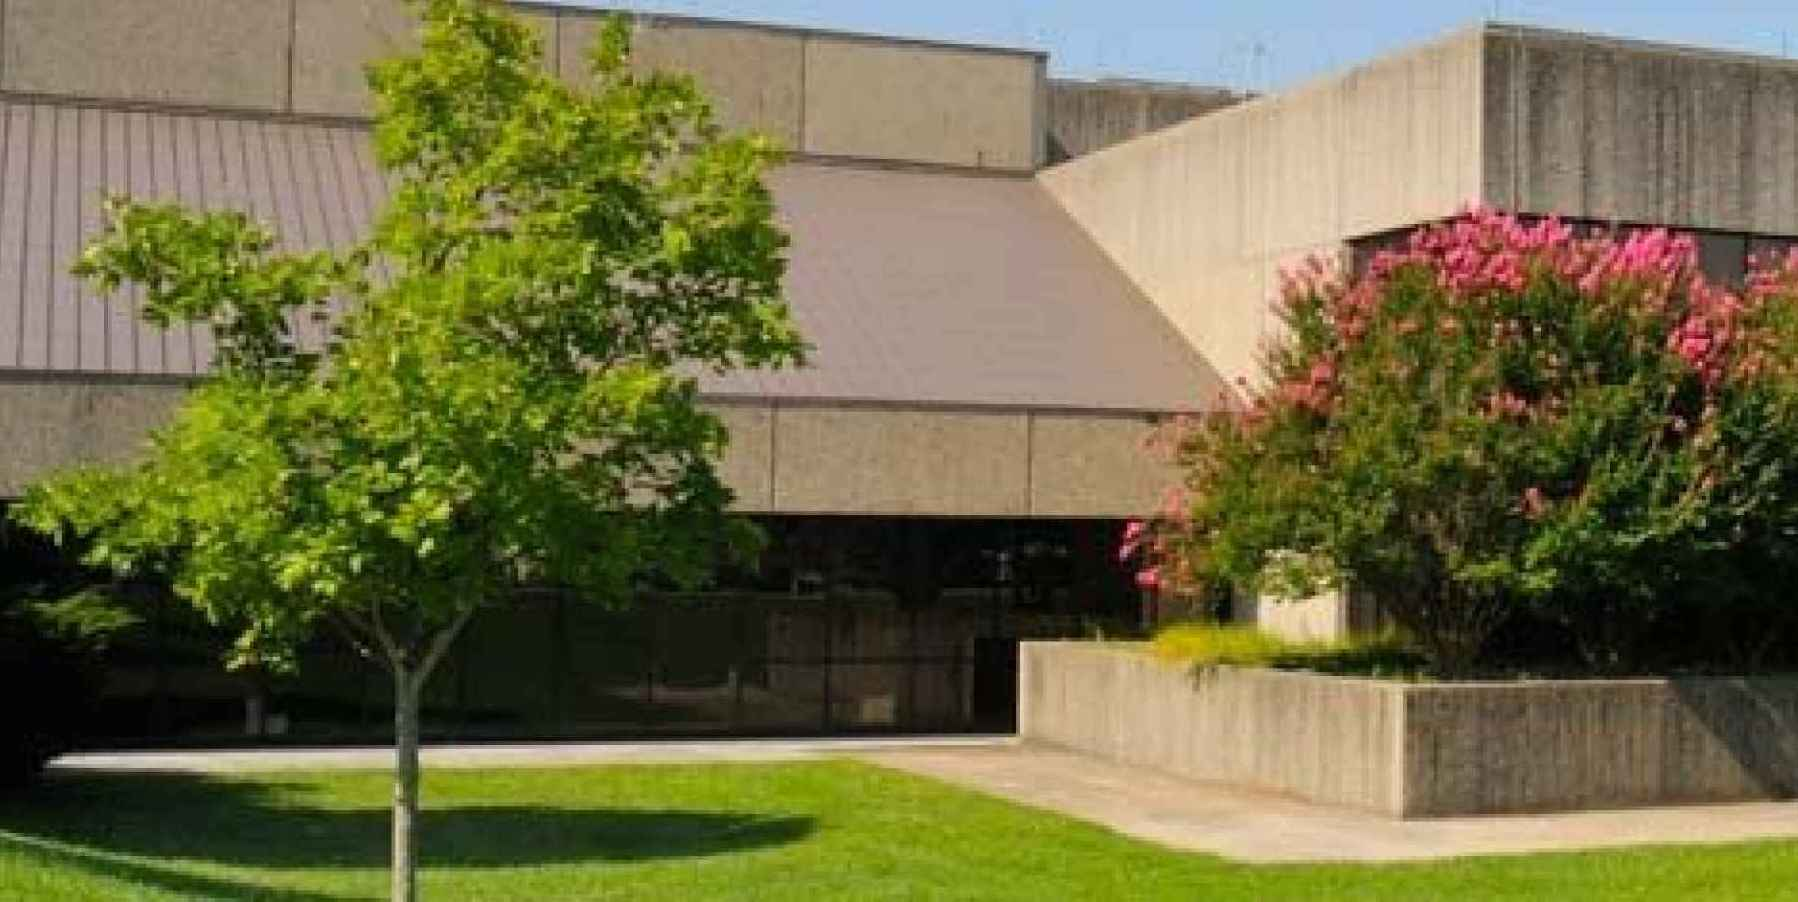 Image shows an outside view of the VetMed Library within the College of Veterinary Medicine complex.